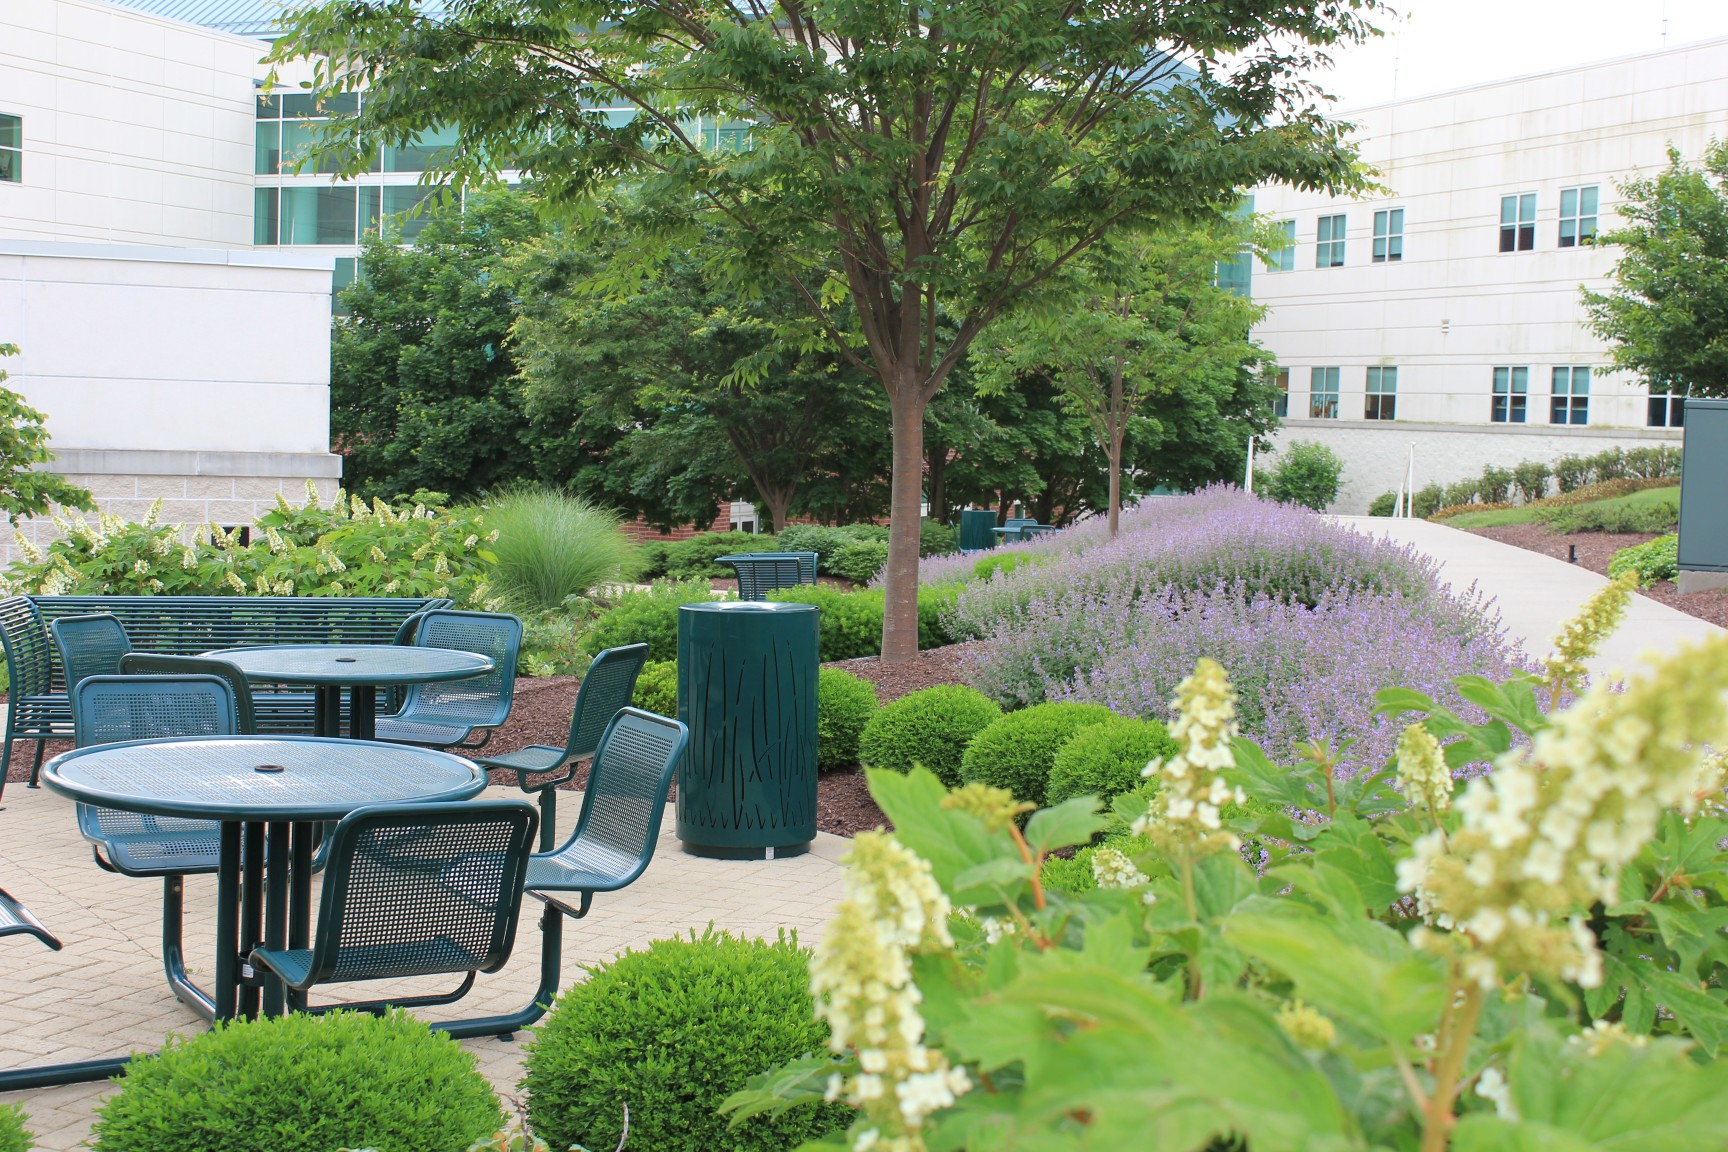 Landscaping services for healthcare properties